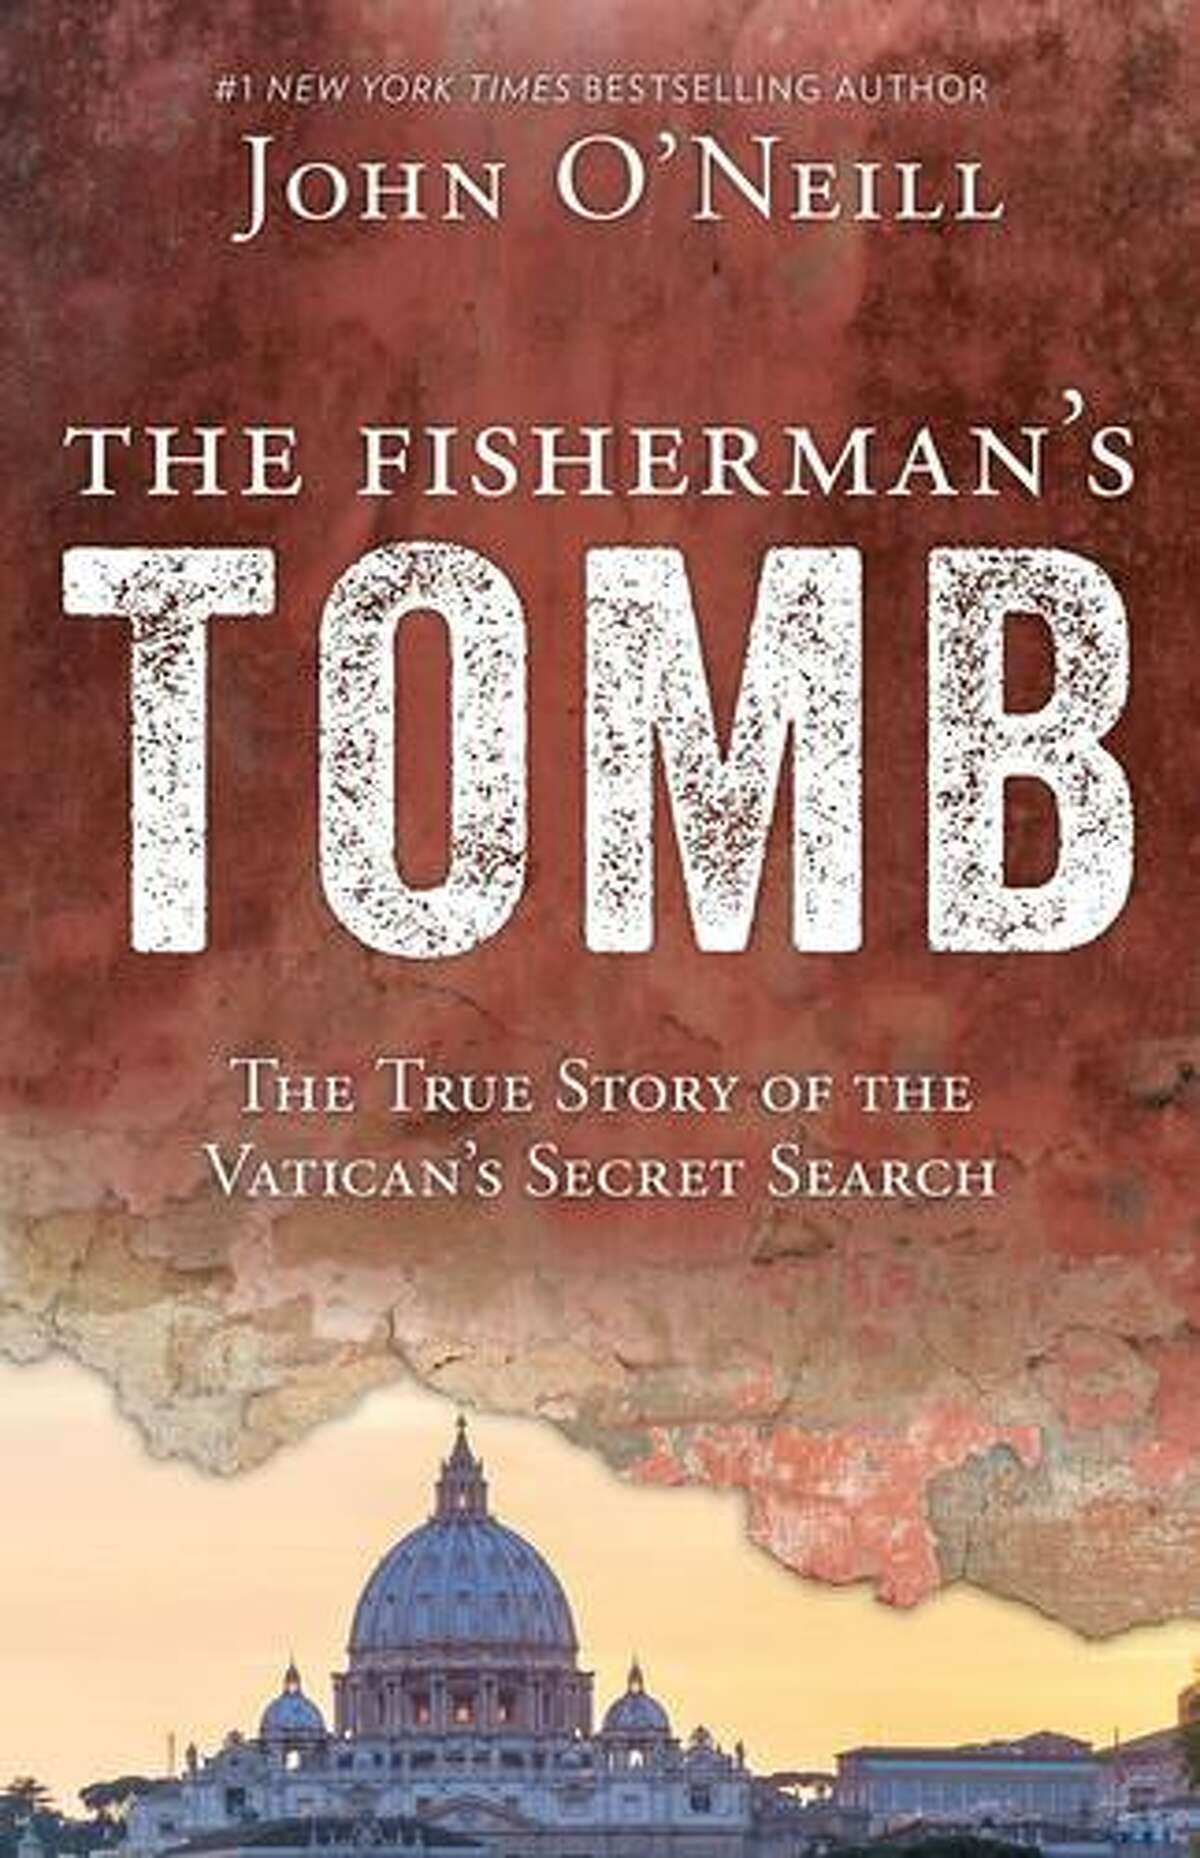 """John O'Neill's book """"The Fisherman's Tomb: The True Story of the Vatican's Secret Search."""""""